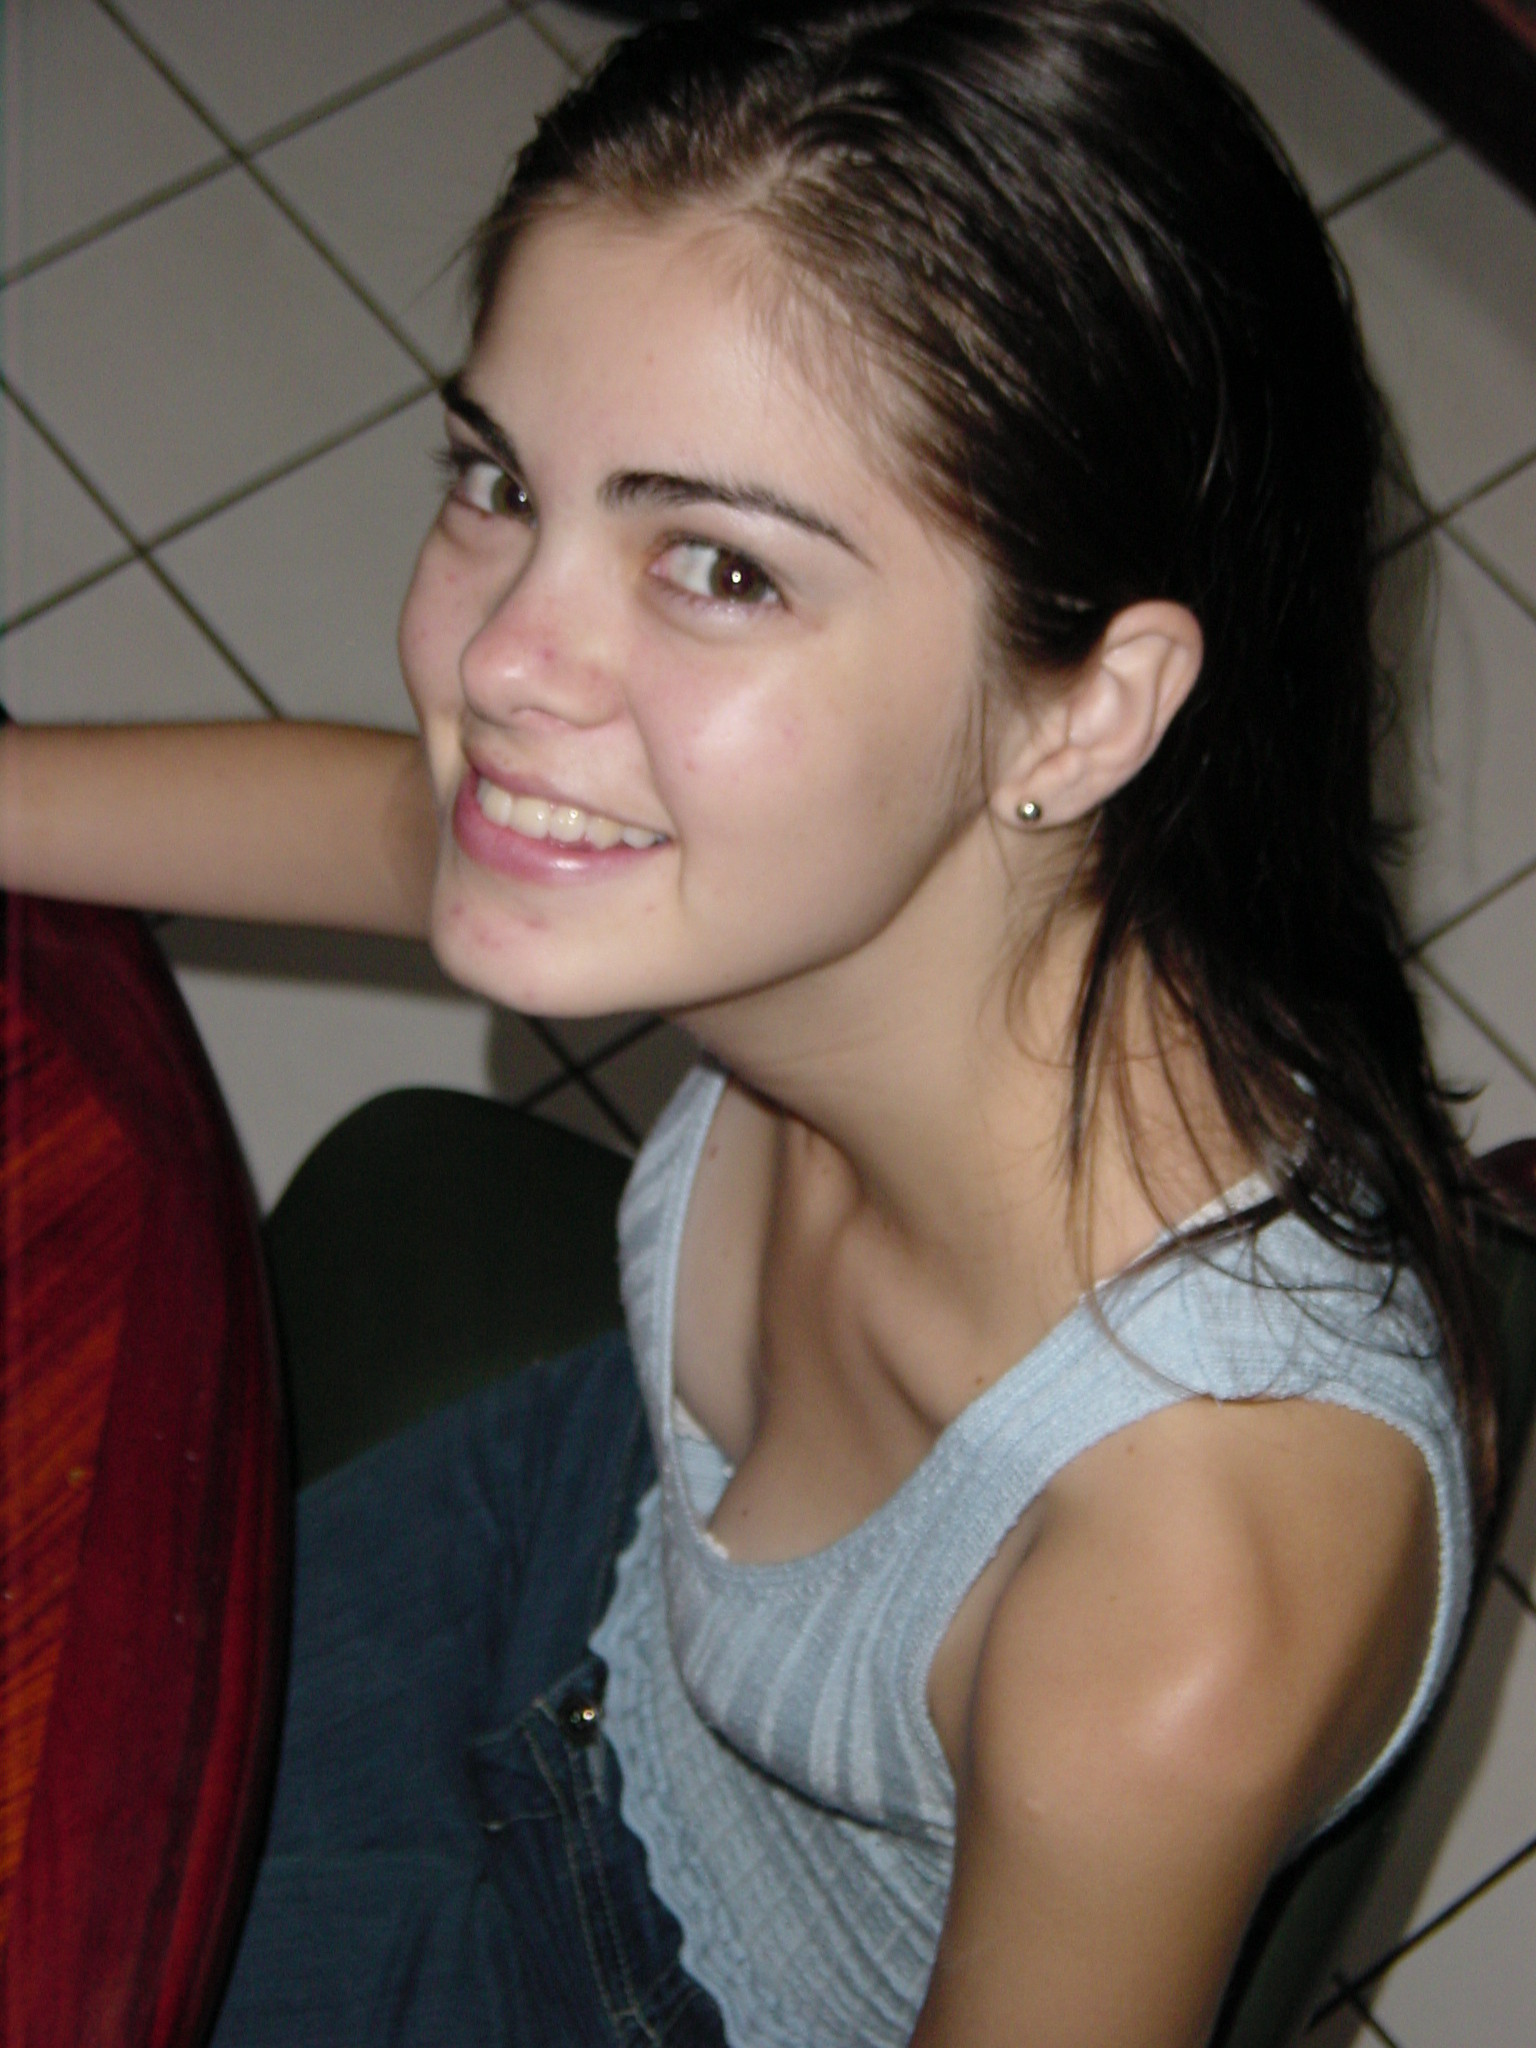 83net young naked $primeassteens [Young 13 nude